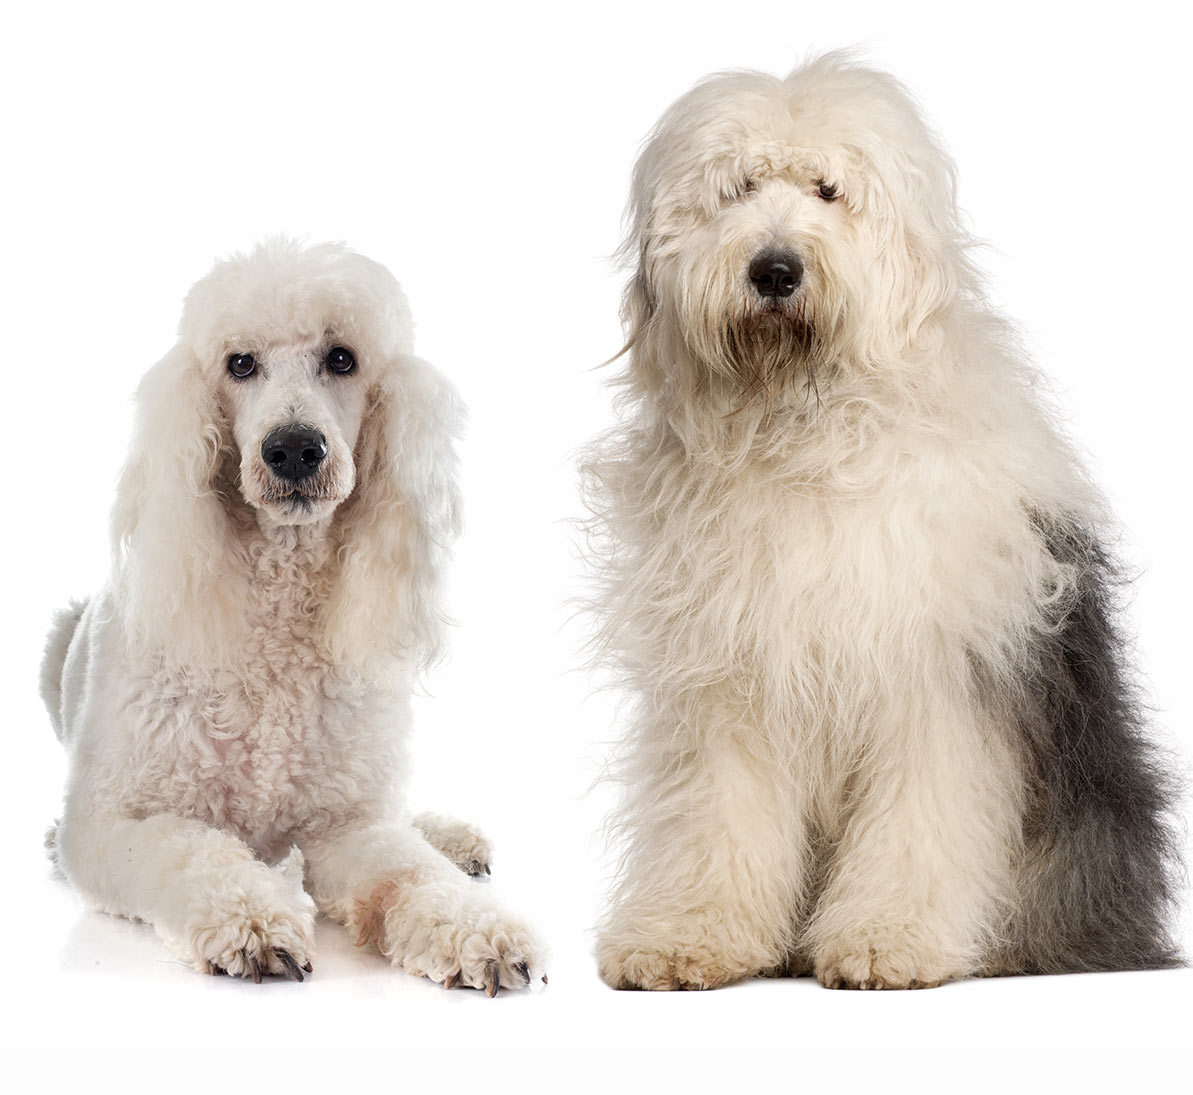 Sheepadoodle The Result Of Mixing Poodles With Old English